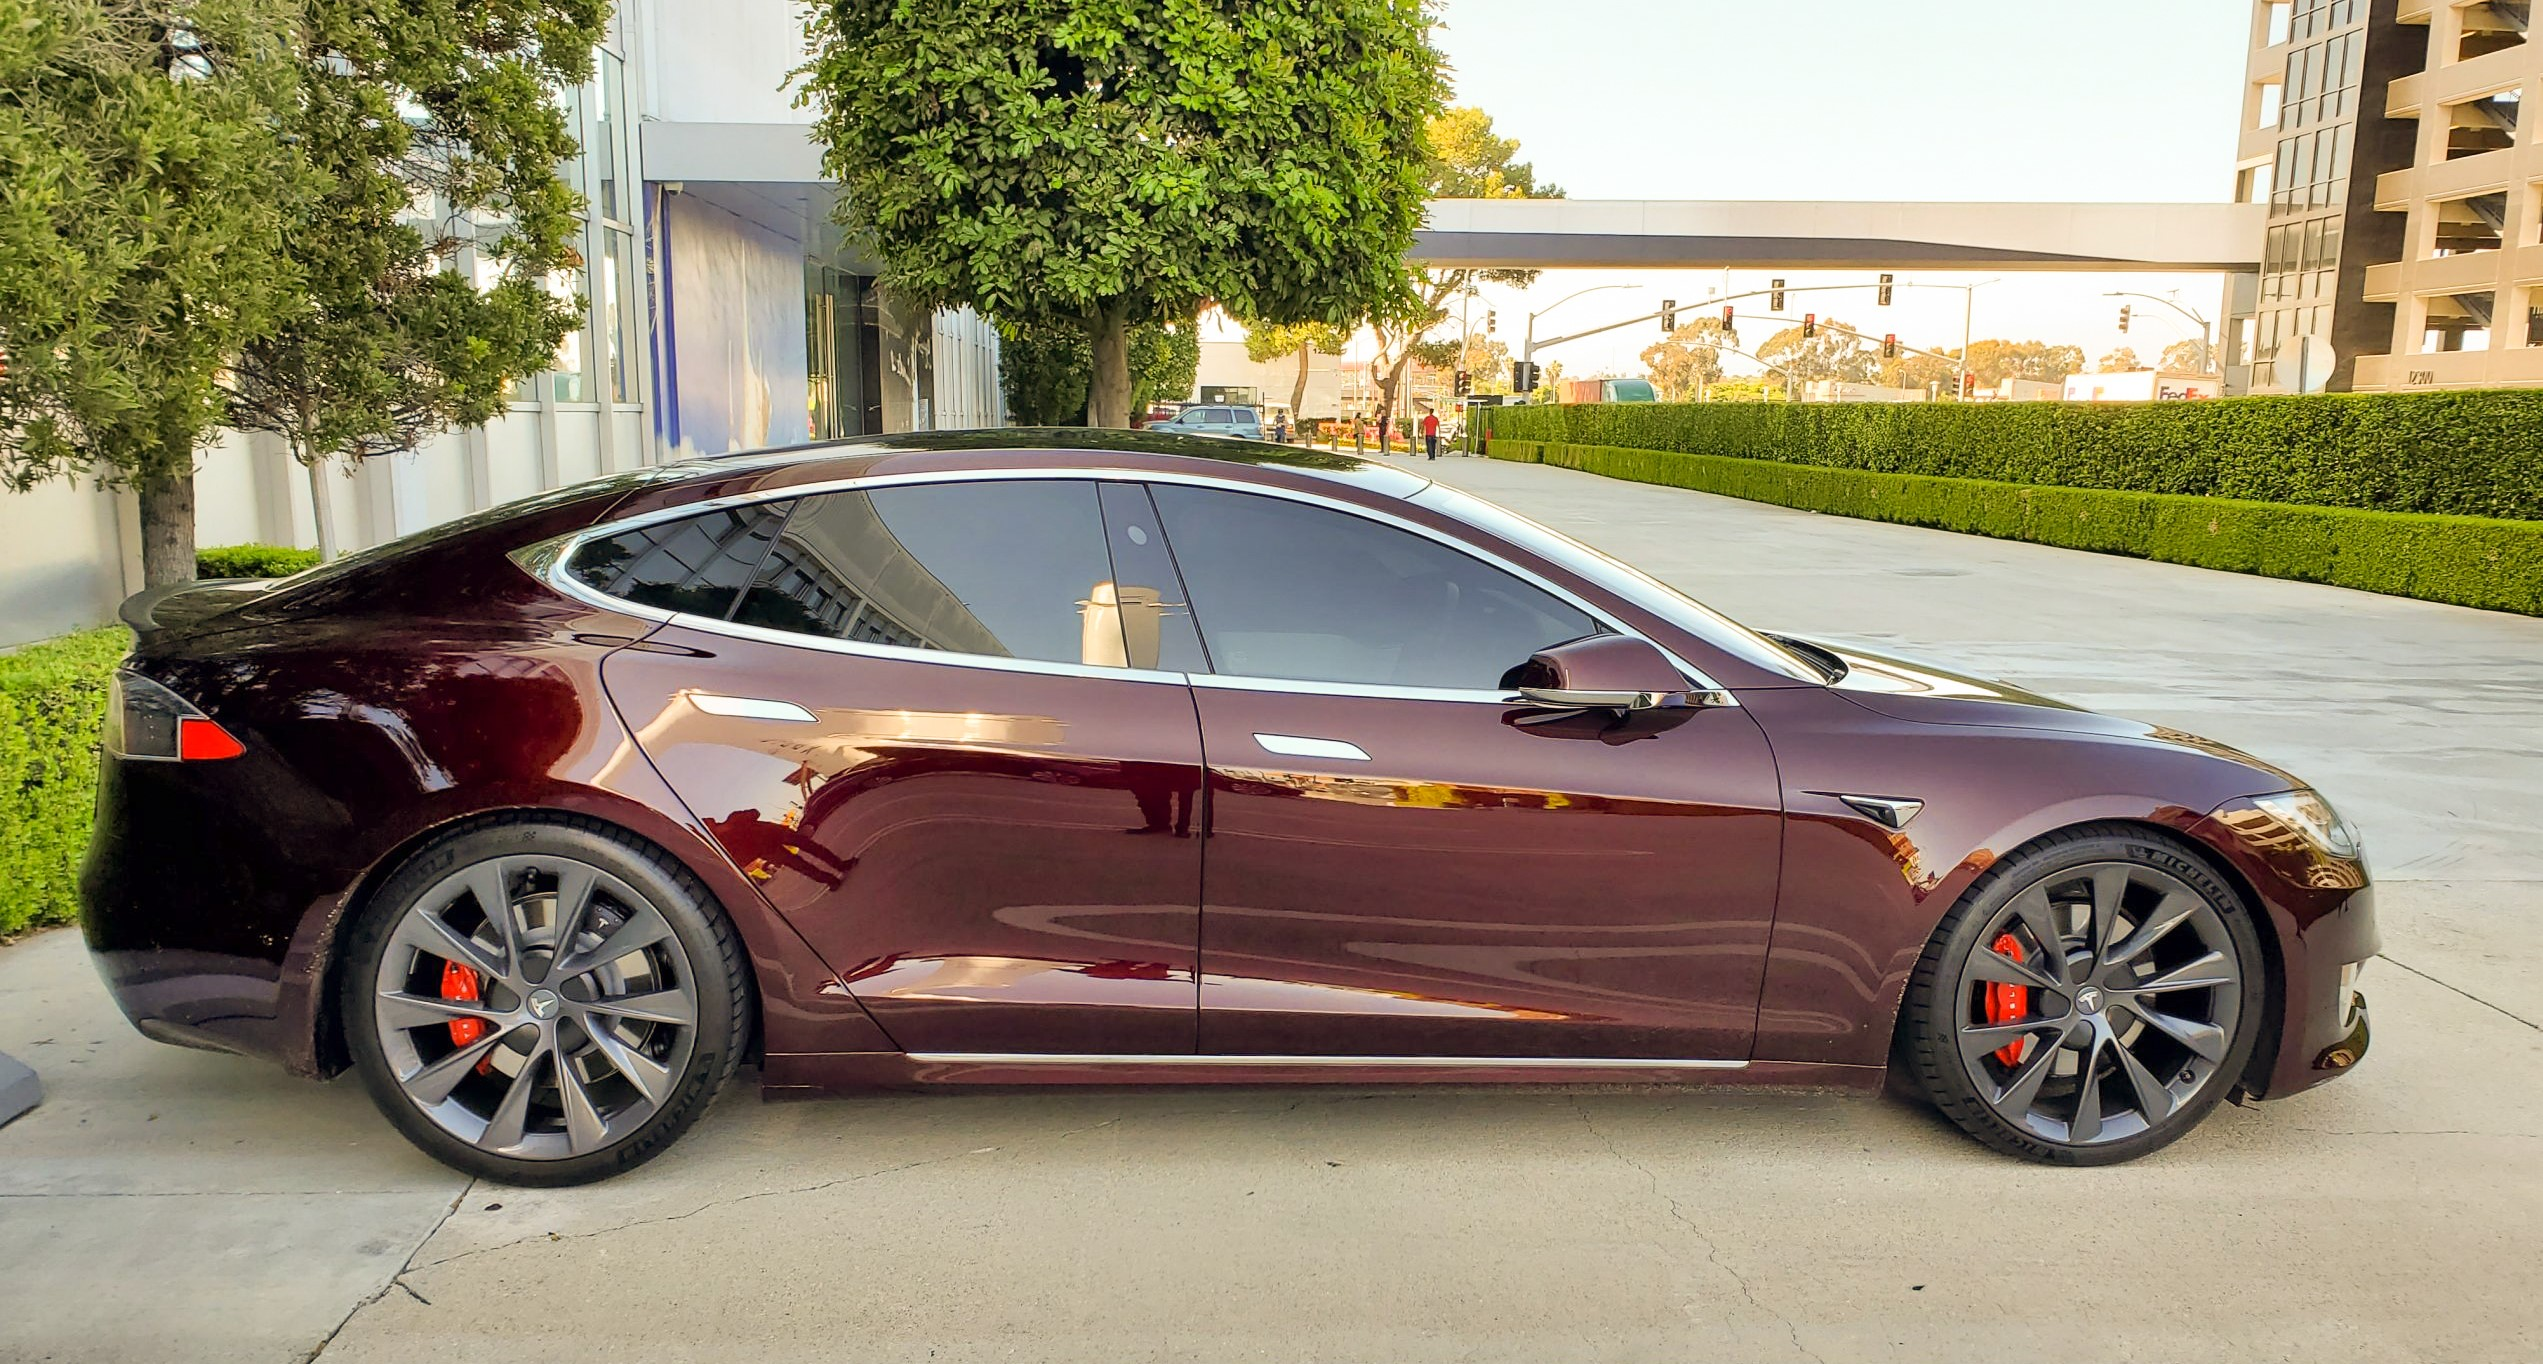 Crimson Red Tesla colour corrected